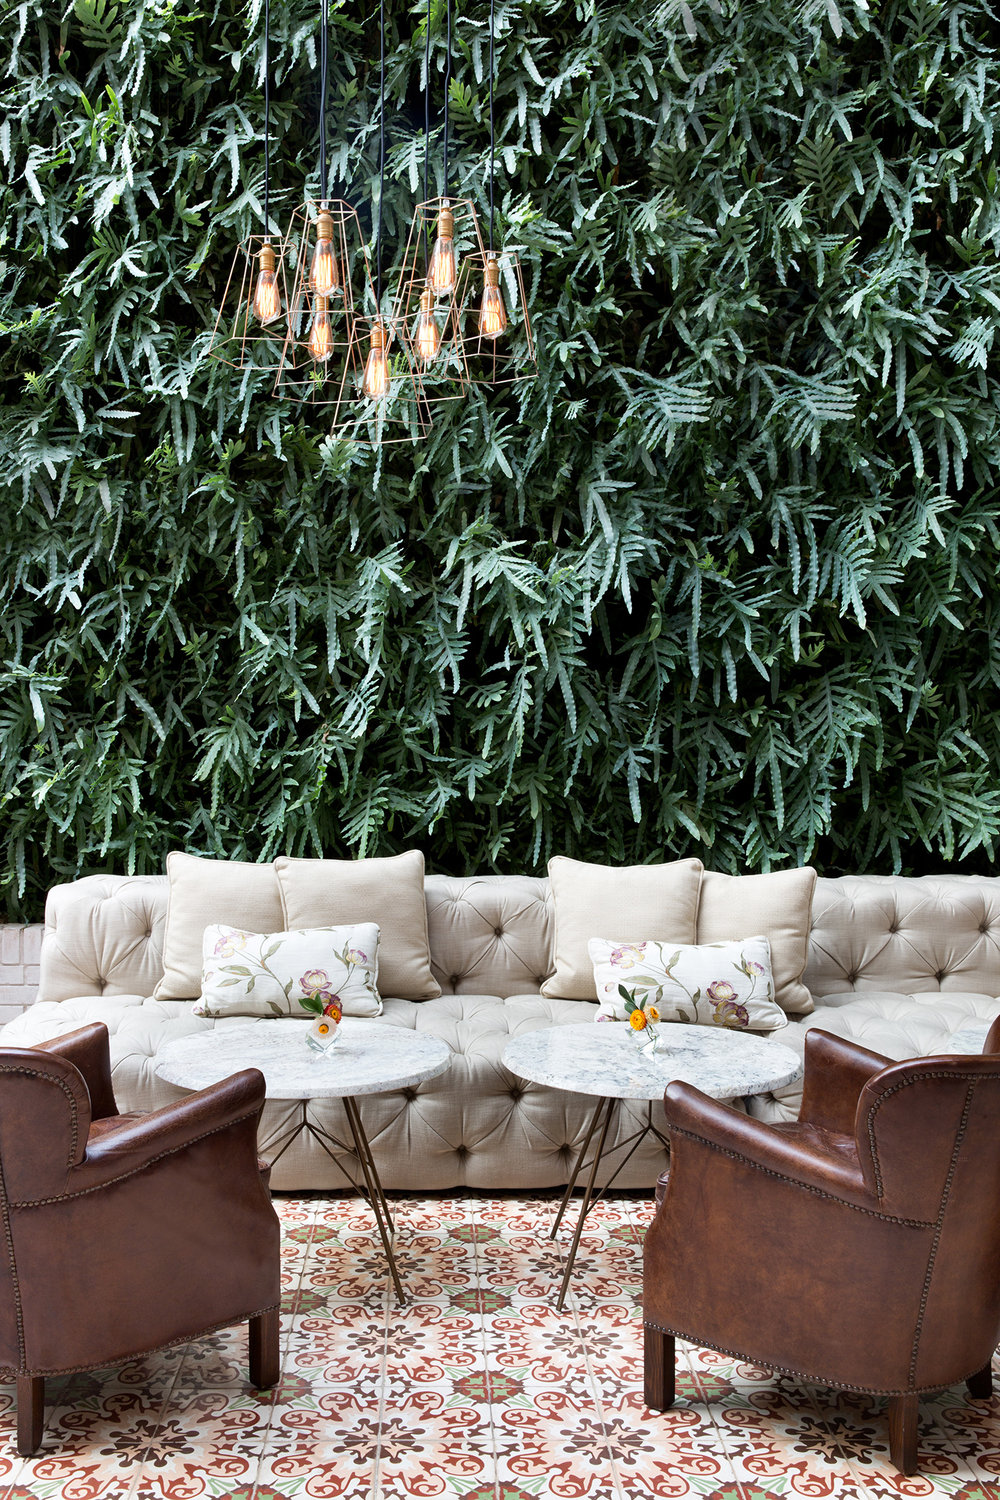 The Four Seasons Casa Medina Bogatá in Columbia. (Photo: Courtesy Four Seasons Casa Medina)